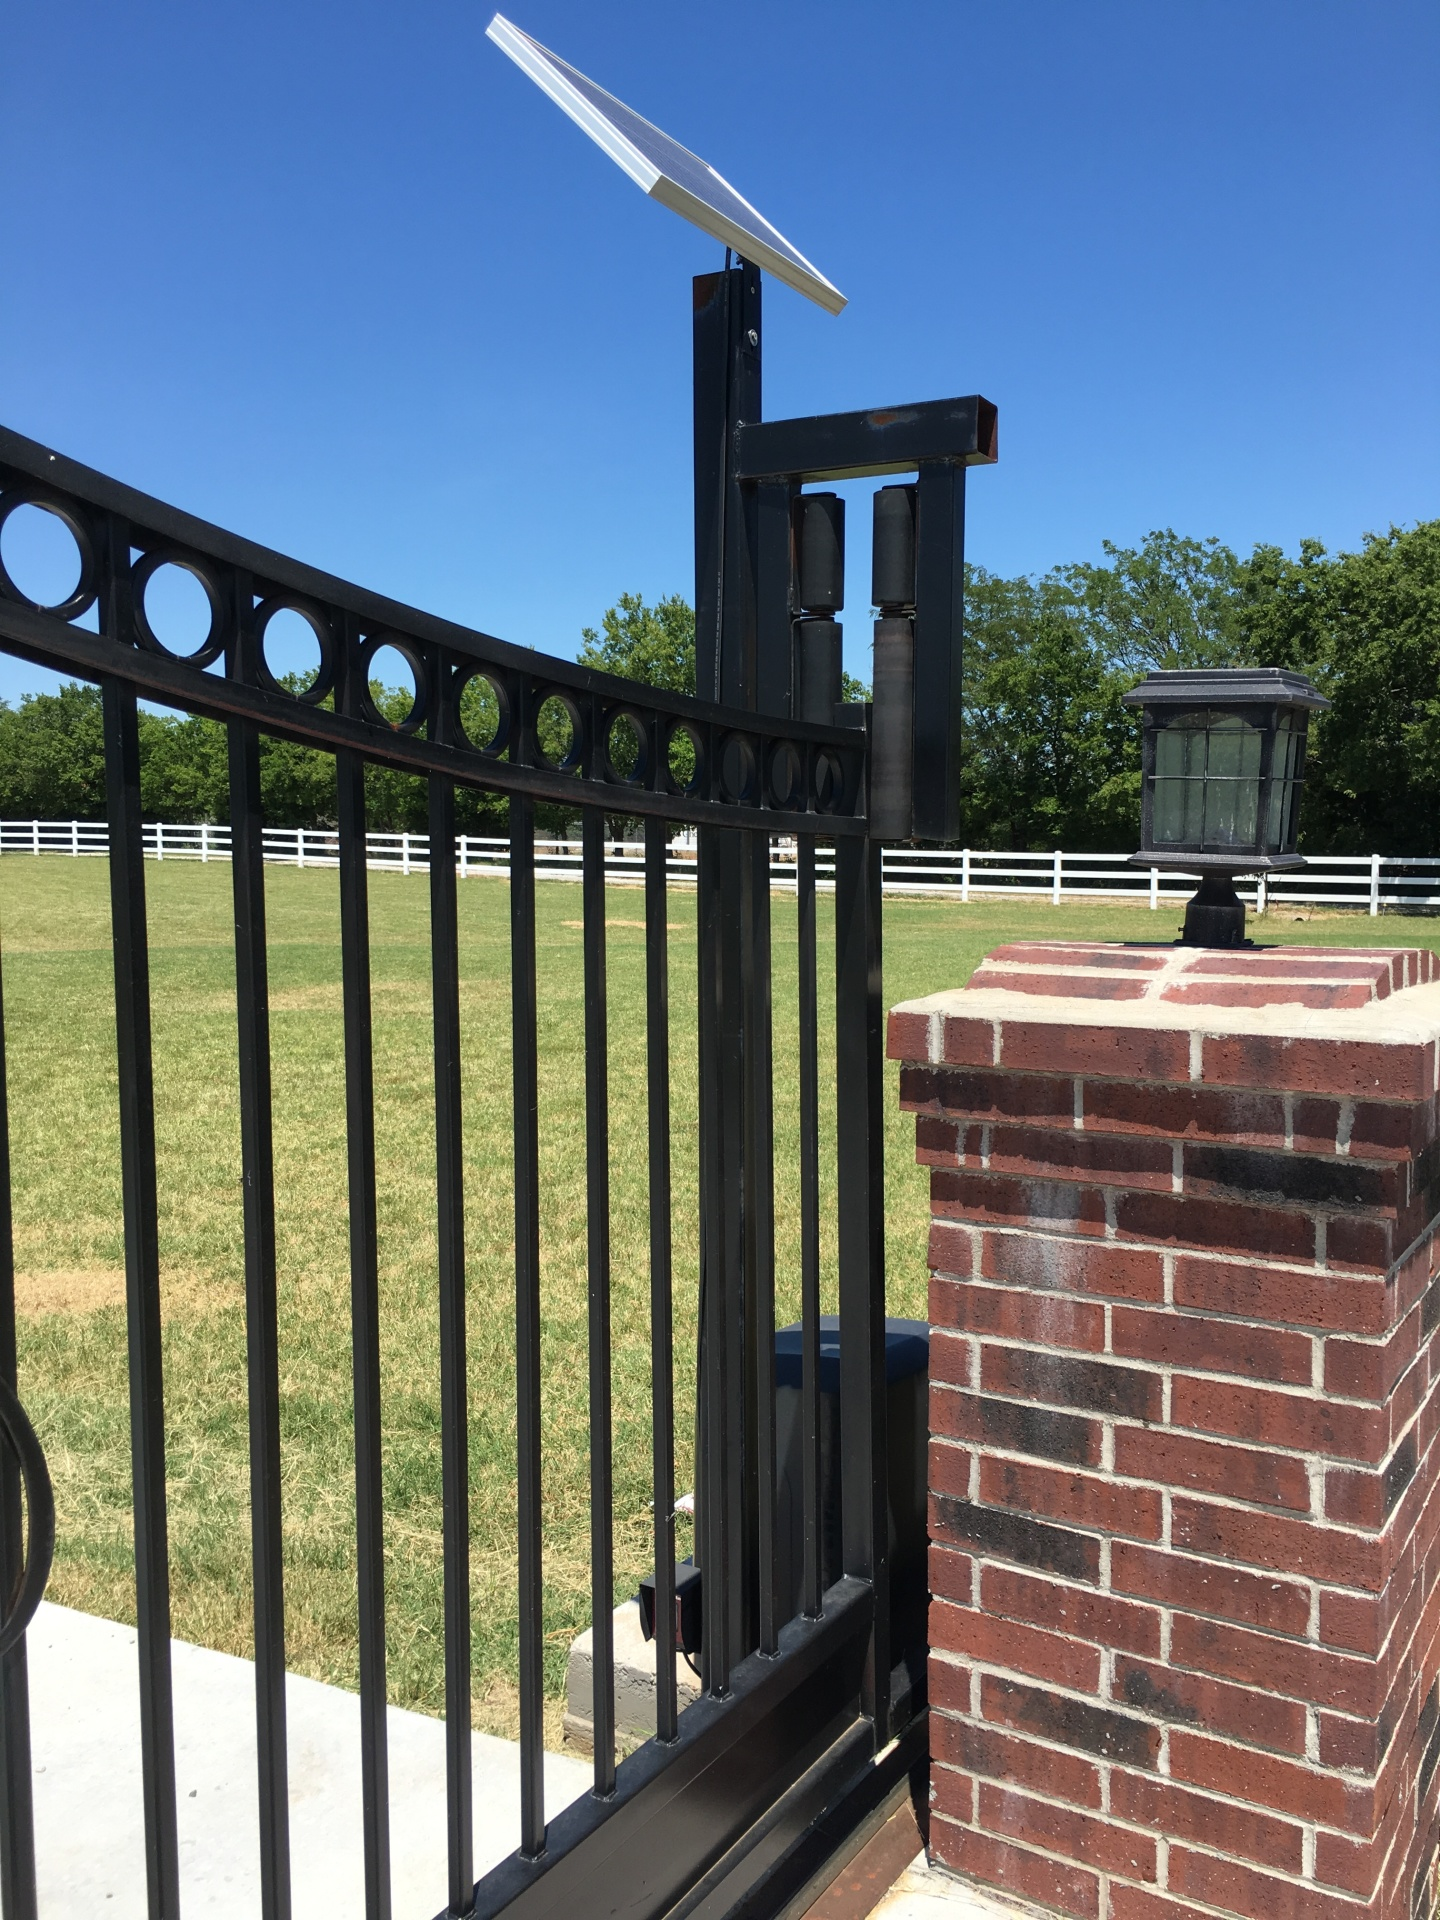 Edmond fence and gate company - solar openers - gate access - security gates - custom iron gates - driveway gate opener - local oklahoma company